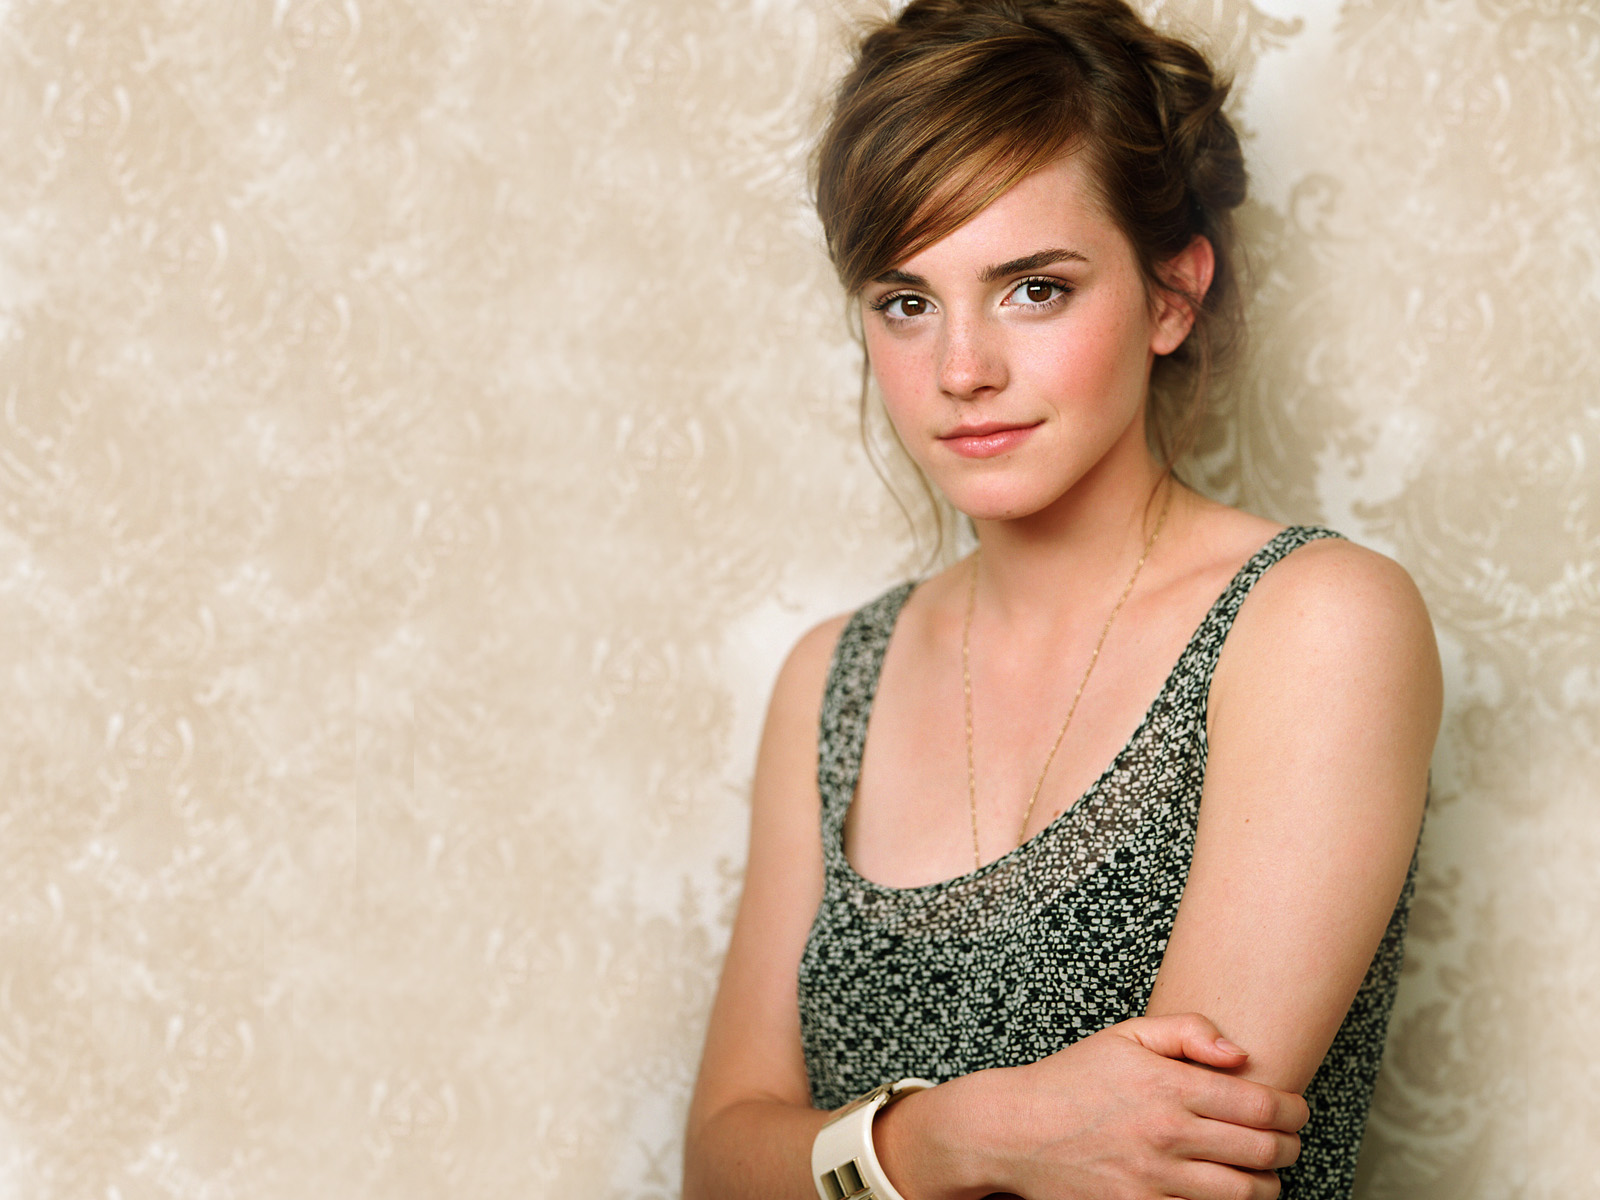 http://2.bp.blogspot.com/-da_A1840gd4/TbGRC-NV6SI/AAAAAAAAAss/V3mur8f6ZyE/s1600/emma_watson_latest_high_quality-normal.jpg